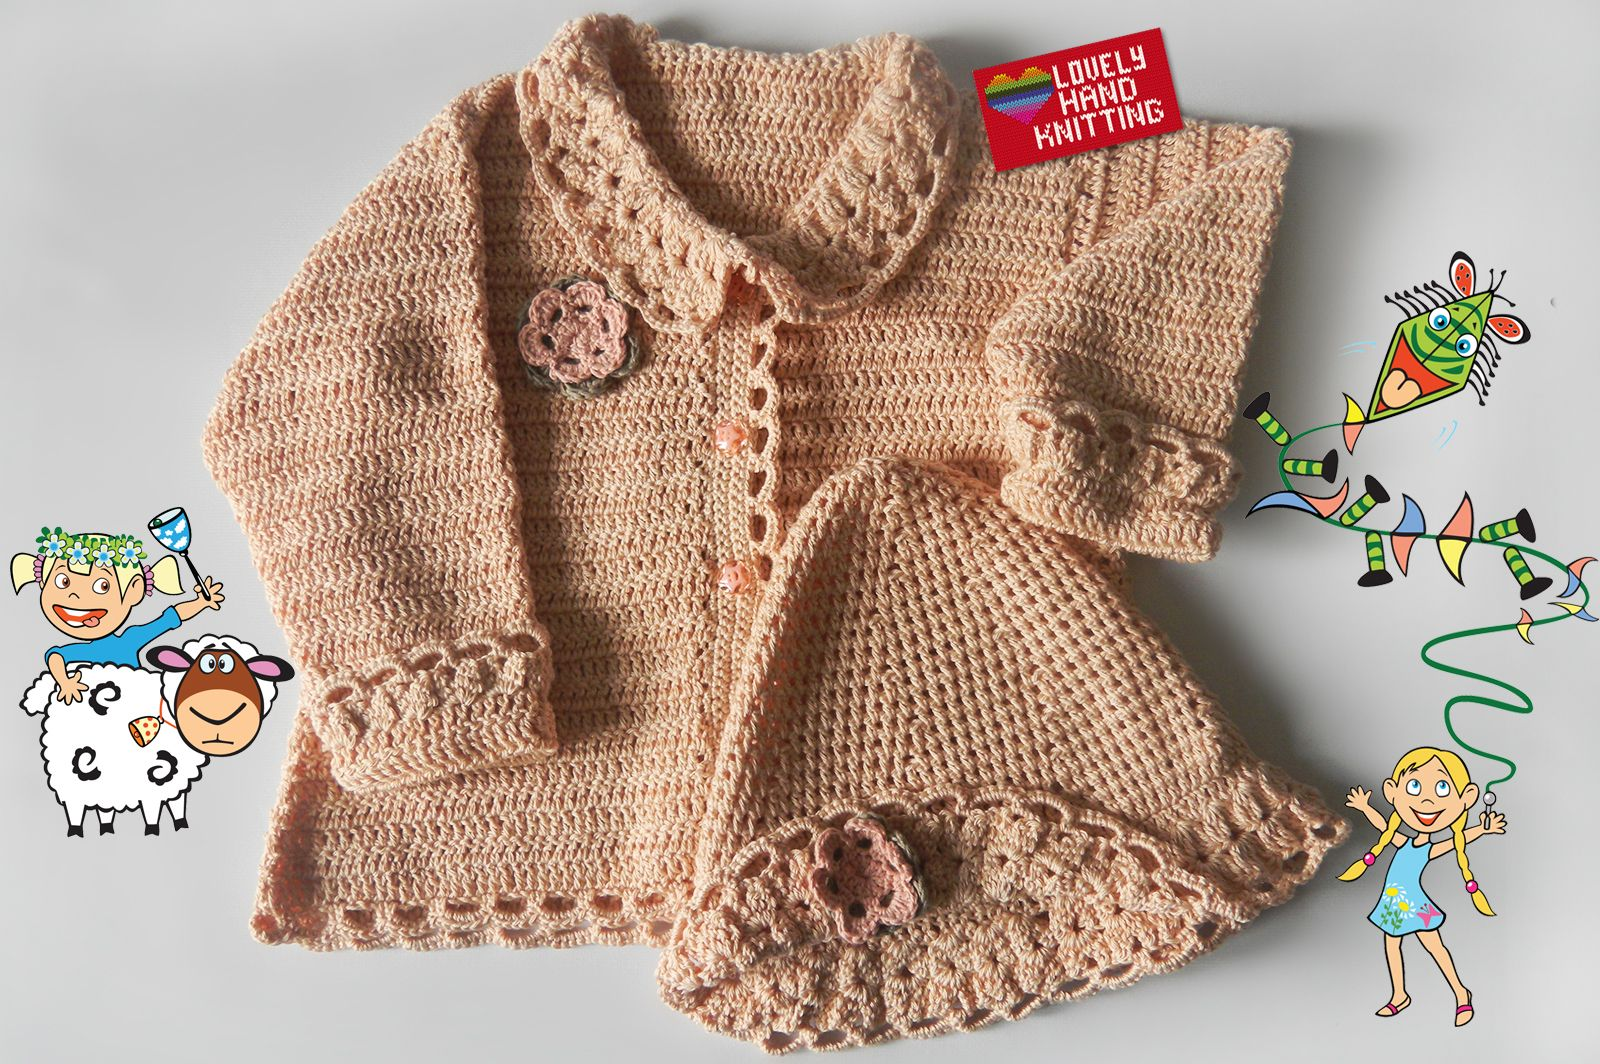 c2b2d83dcb9d Baby sweater crochet cardigan and matching hat - adorable handmade ...